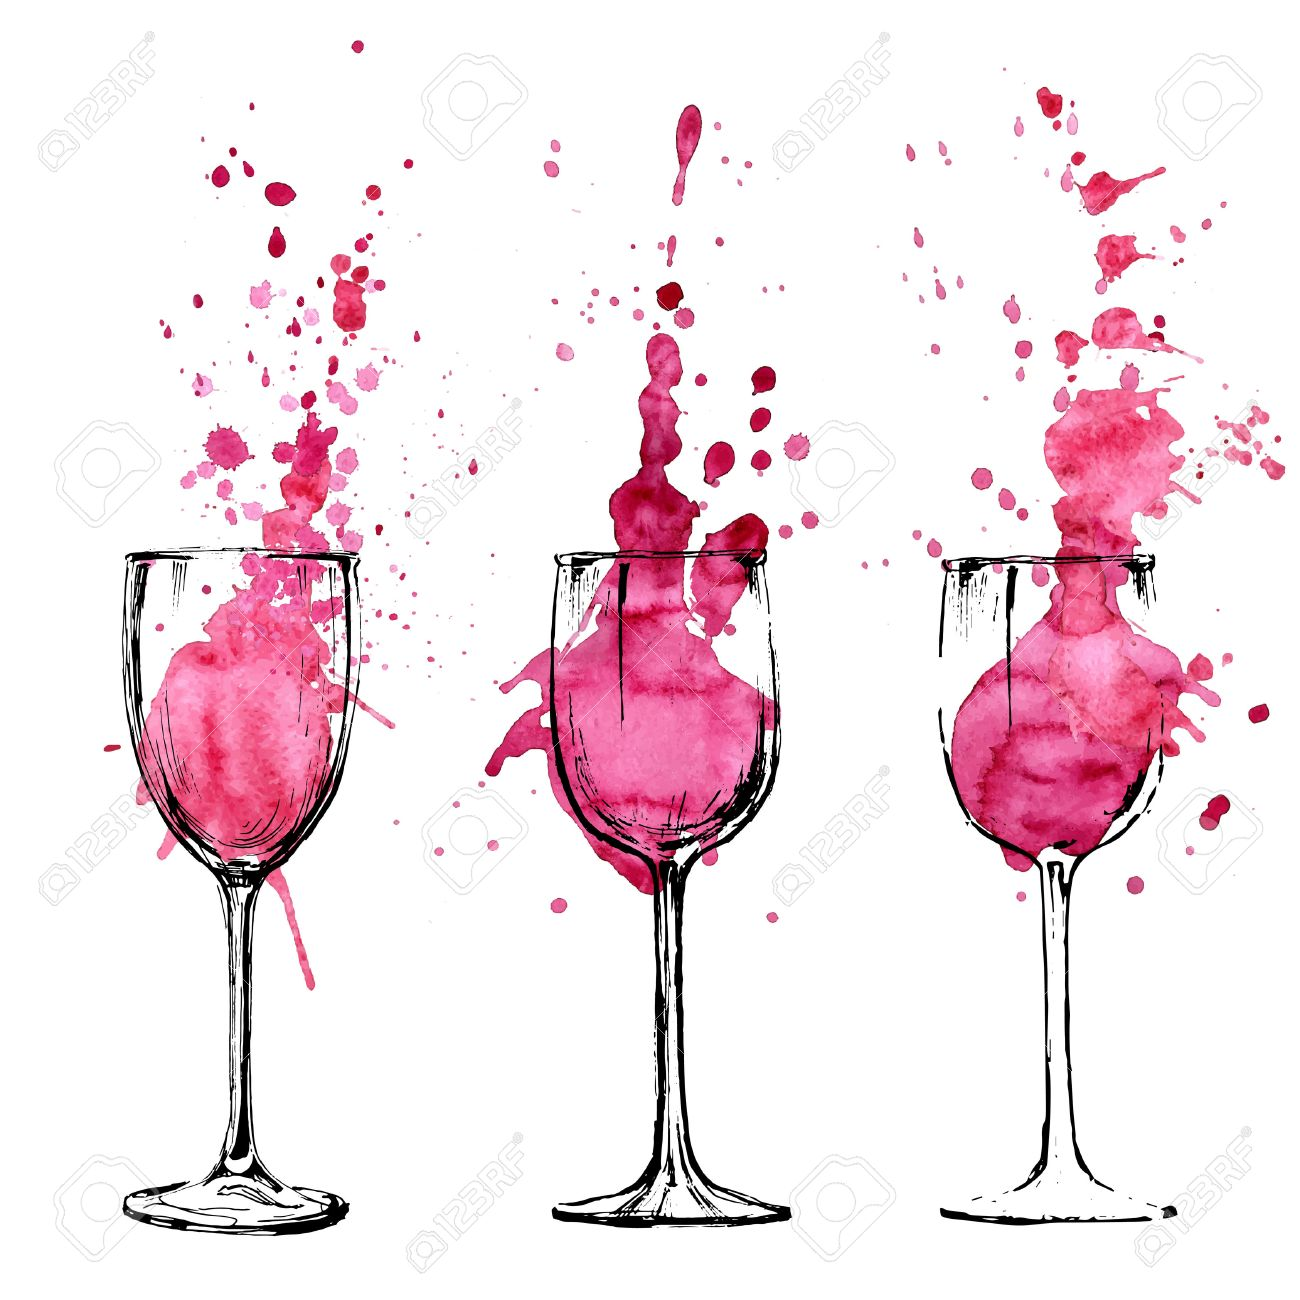 Wine illustration - sketch and art style - 39288466